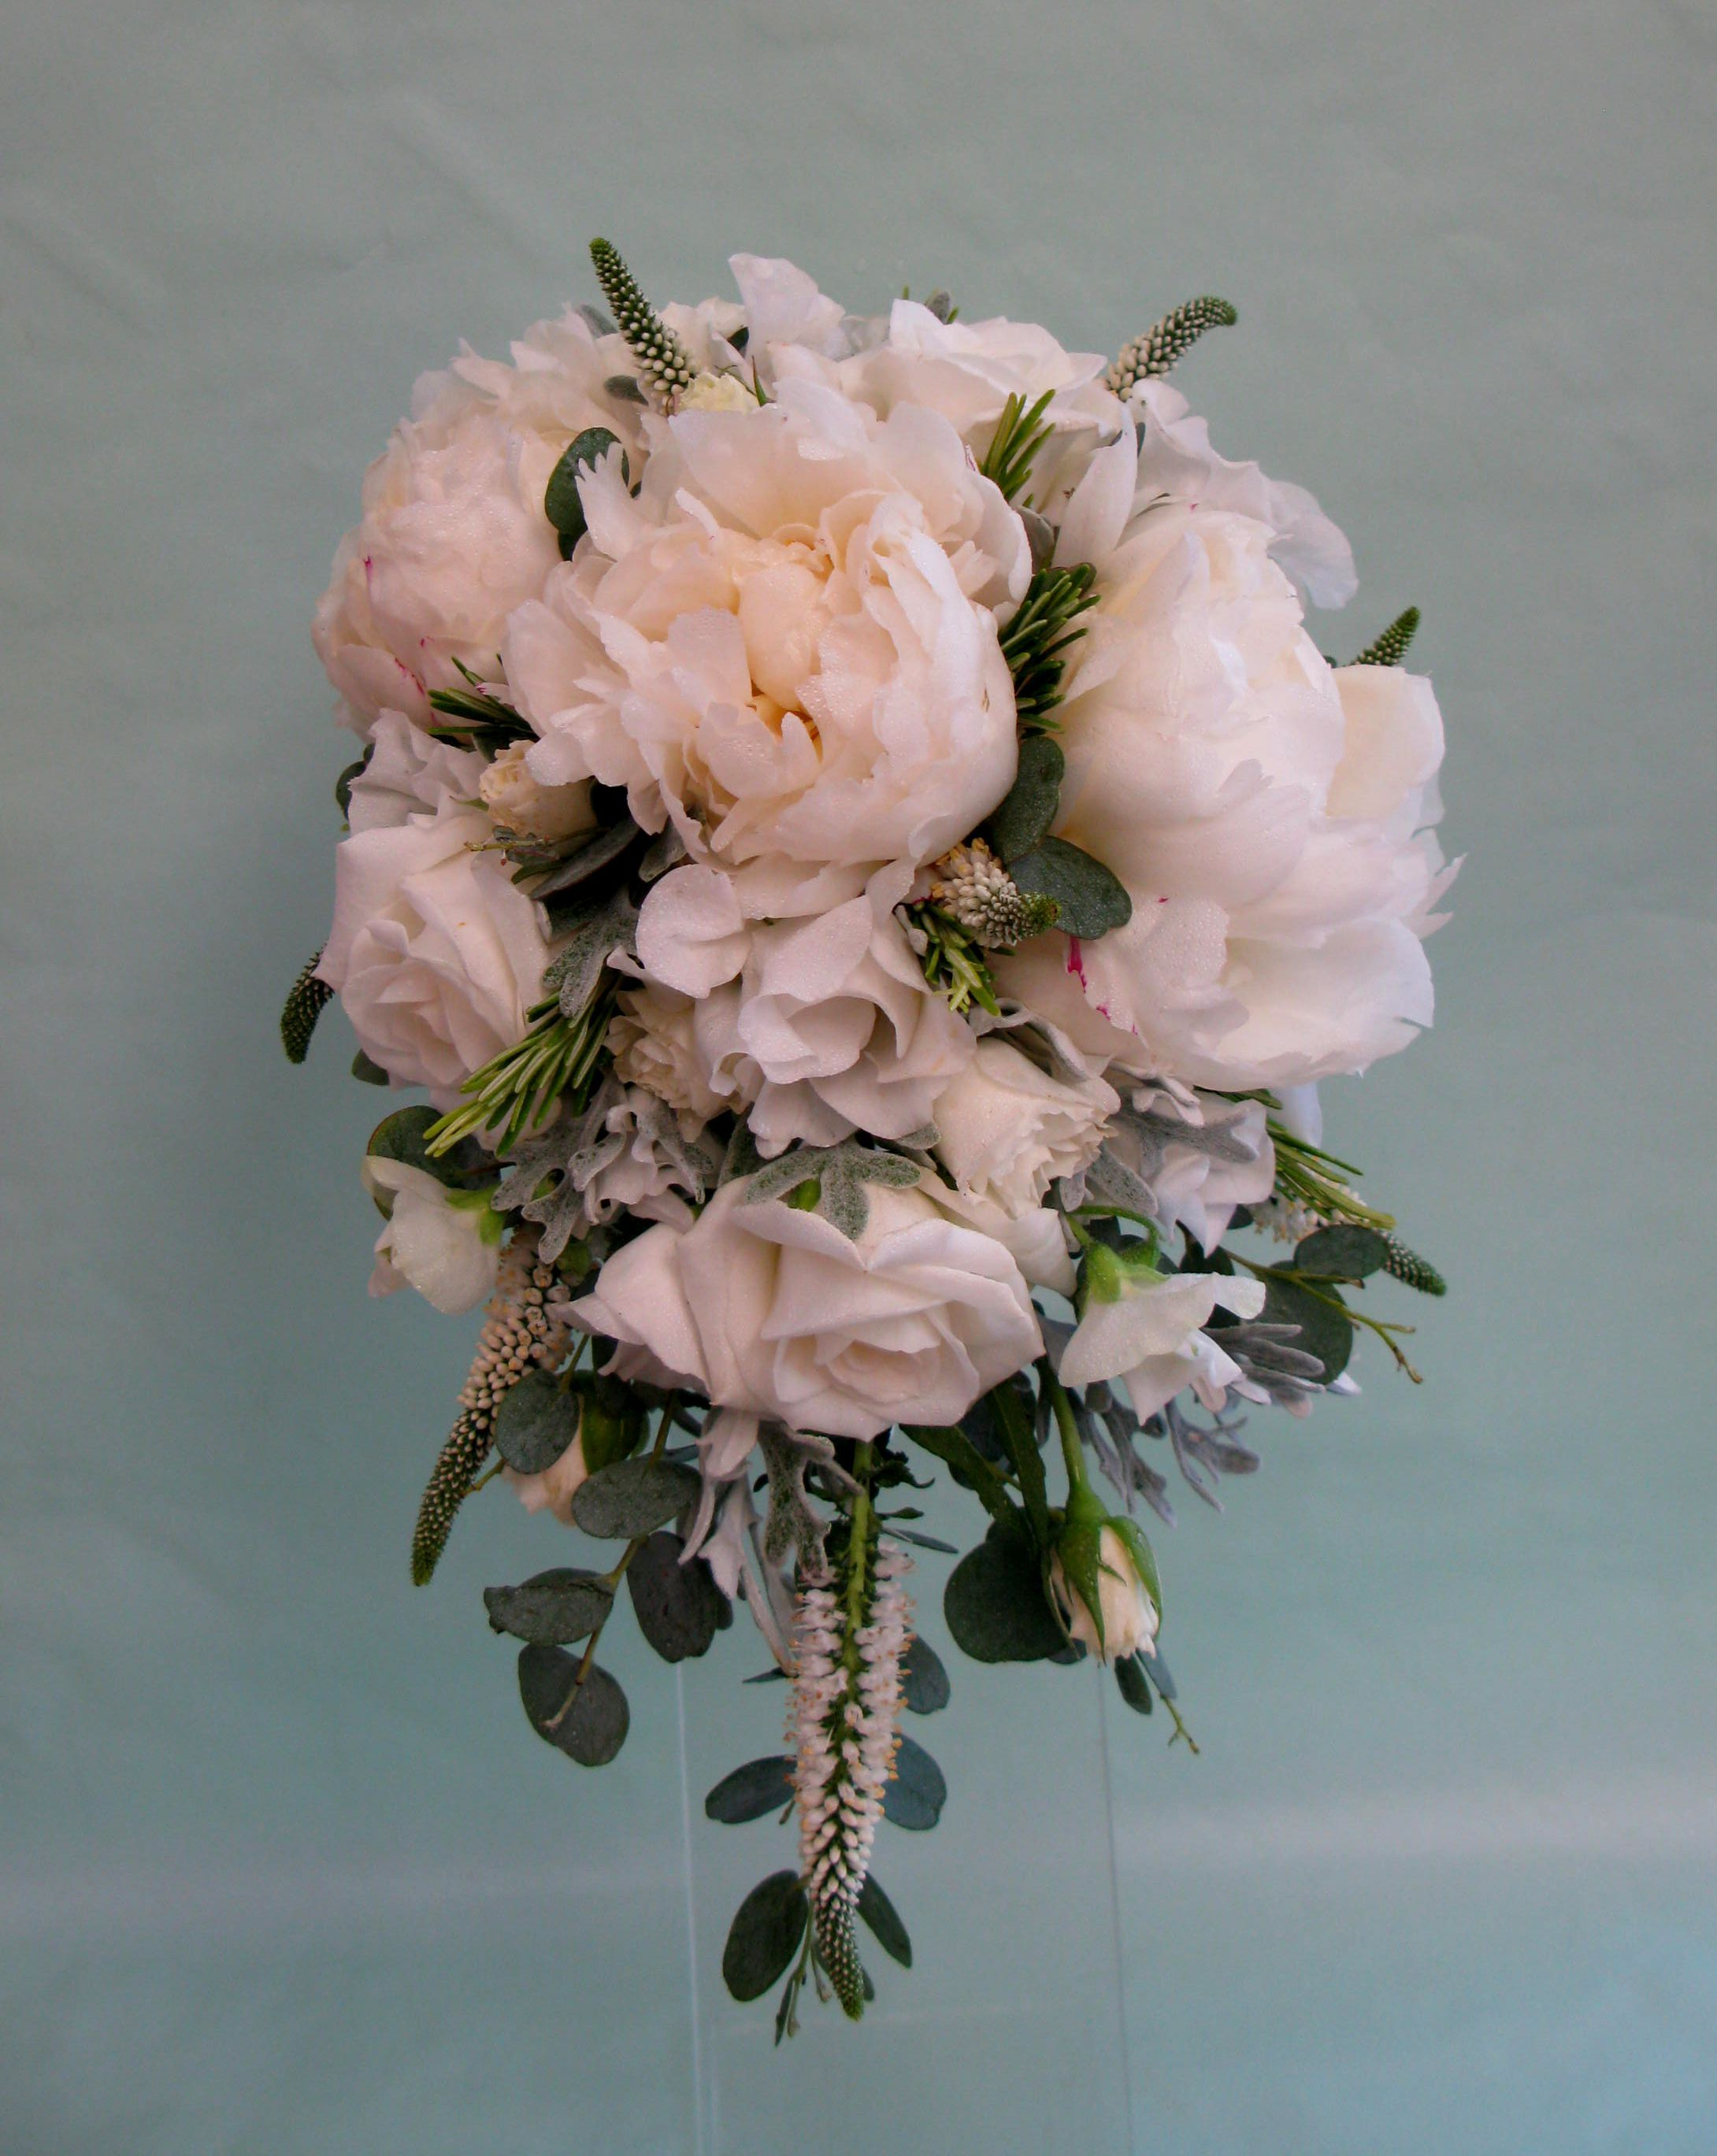 Charmant This Compact, But Elegant Shower Bouquet Shows Off The Beauty Of The Summer  Blooms.